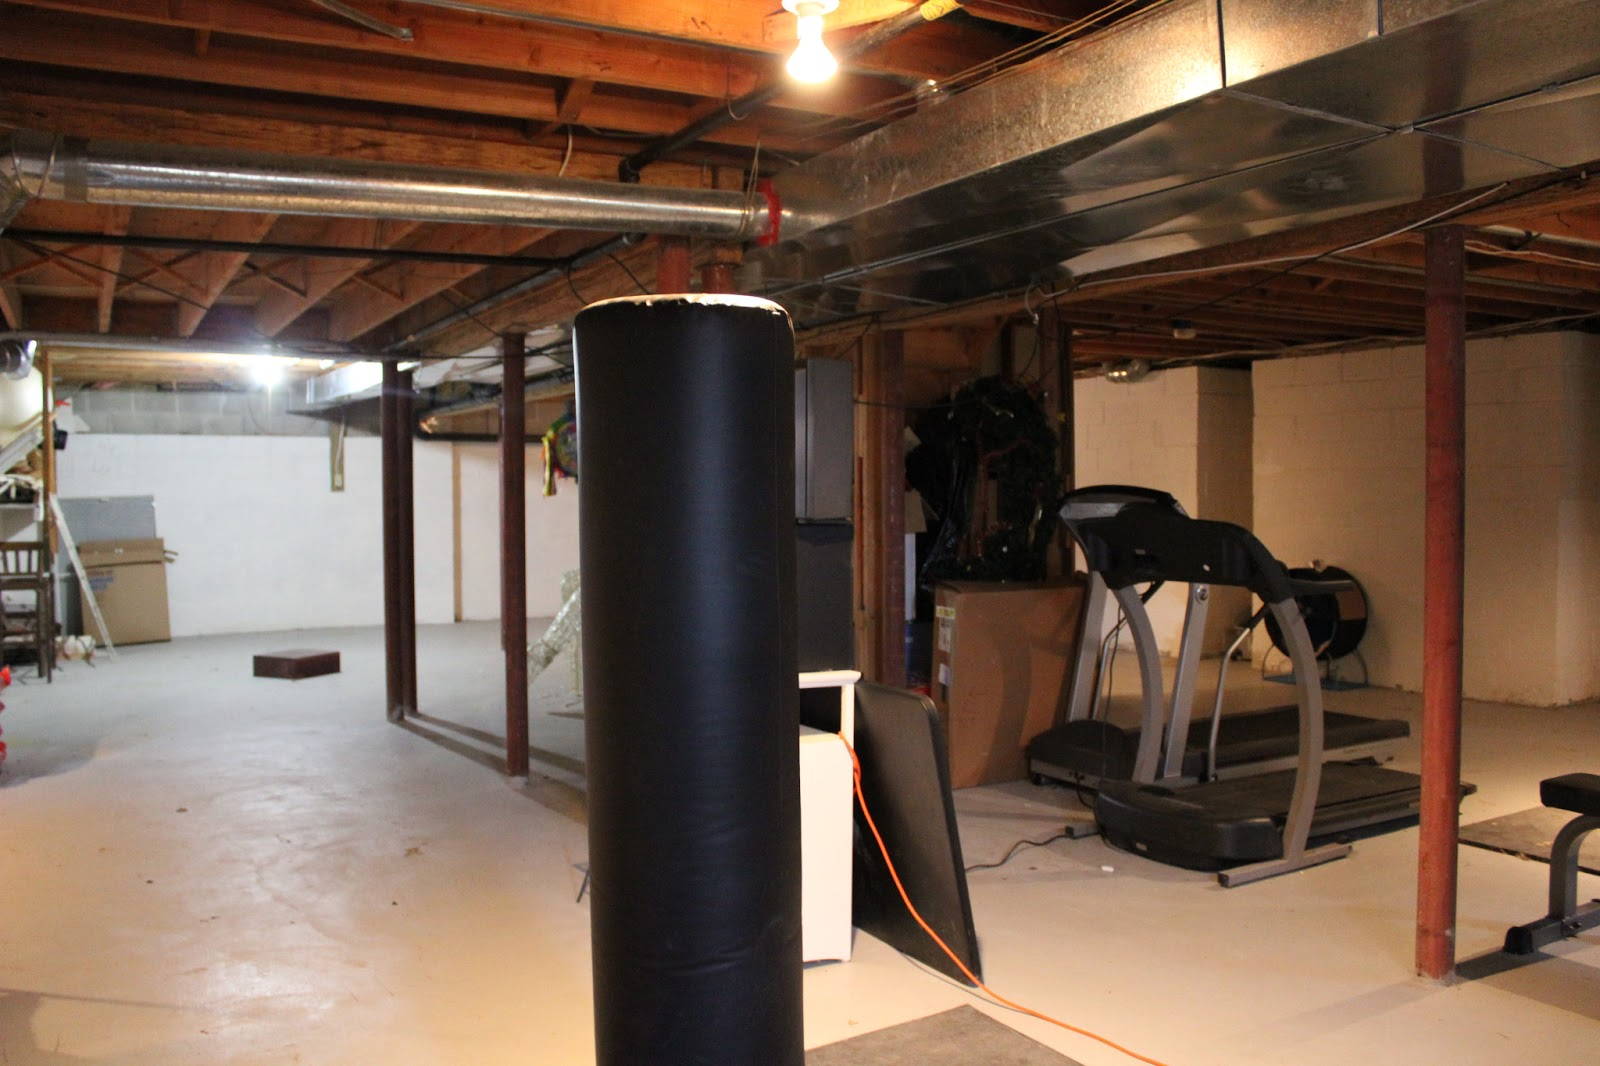 Basement Remodeling Ideas Before And After 101 smart home remodeling ideas on a budget